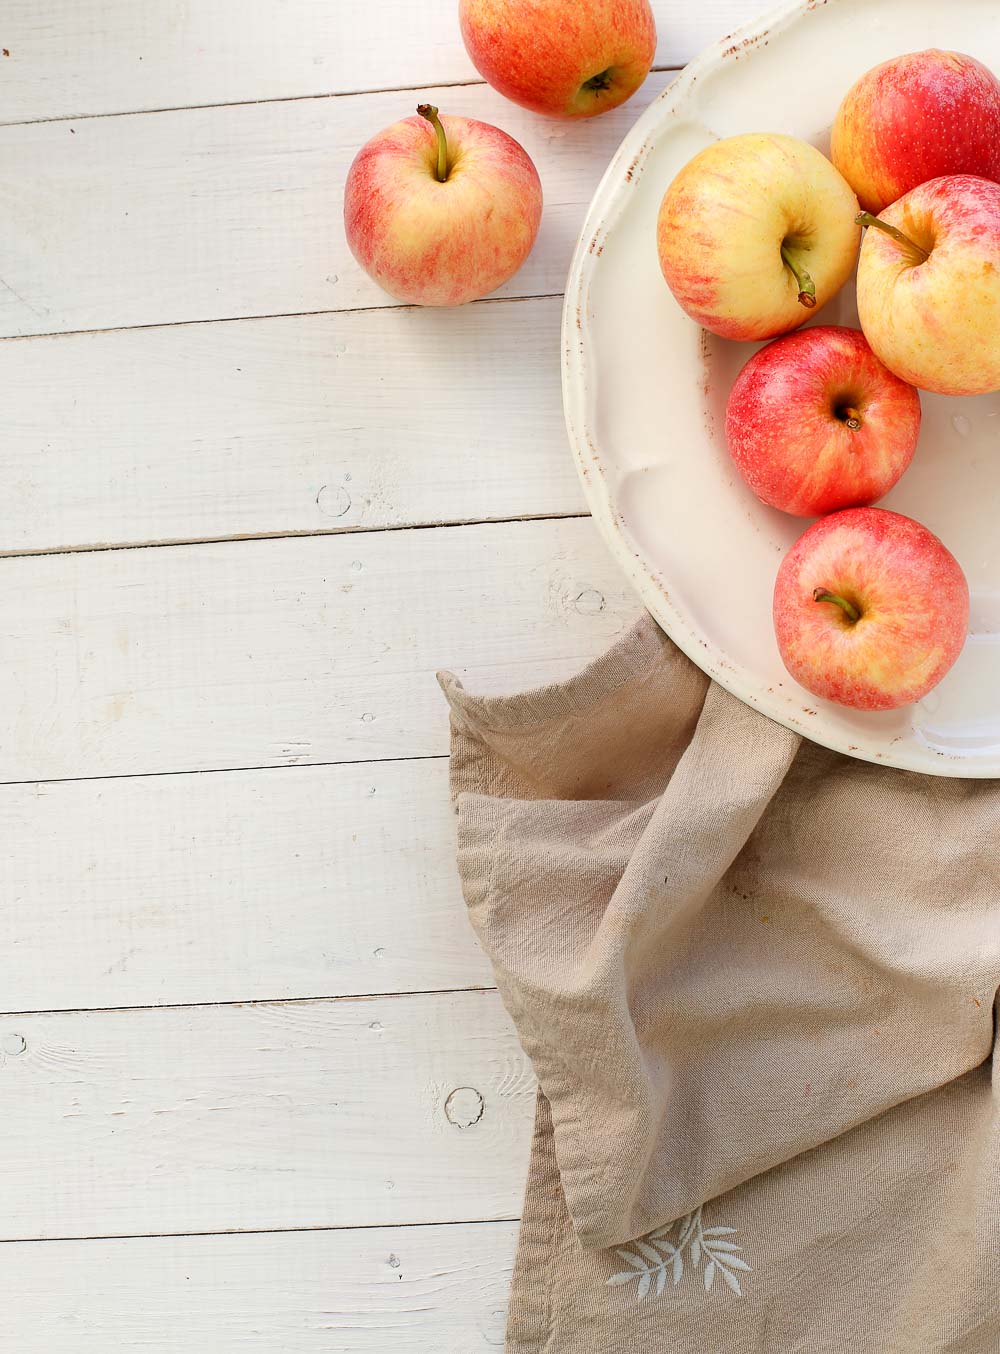 Apples for Baby-Led Weaning